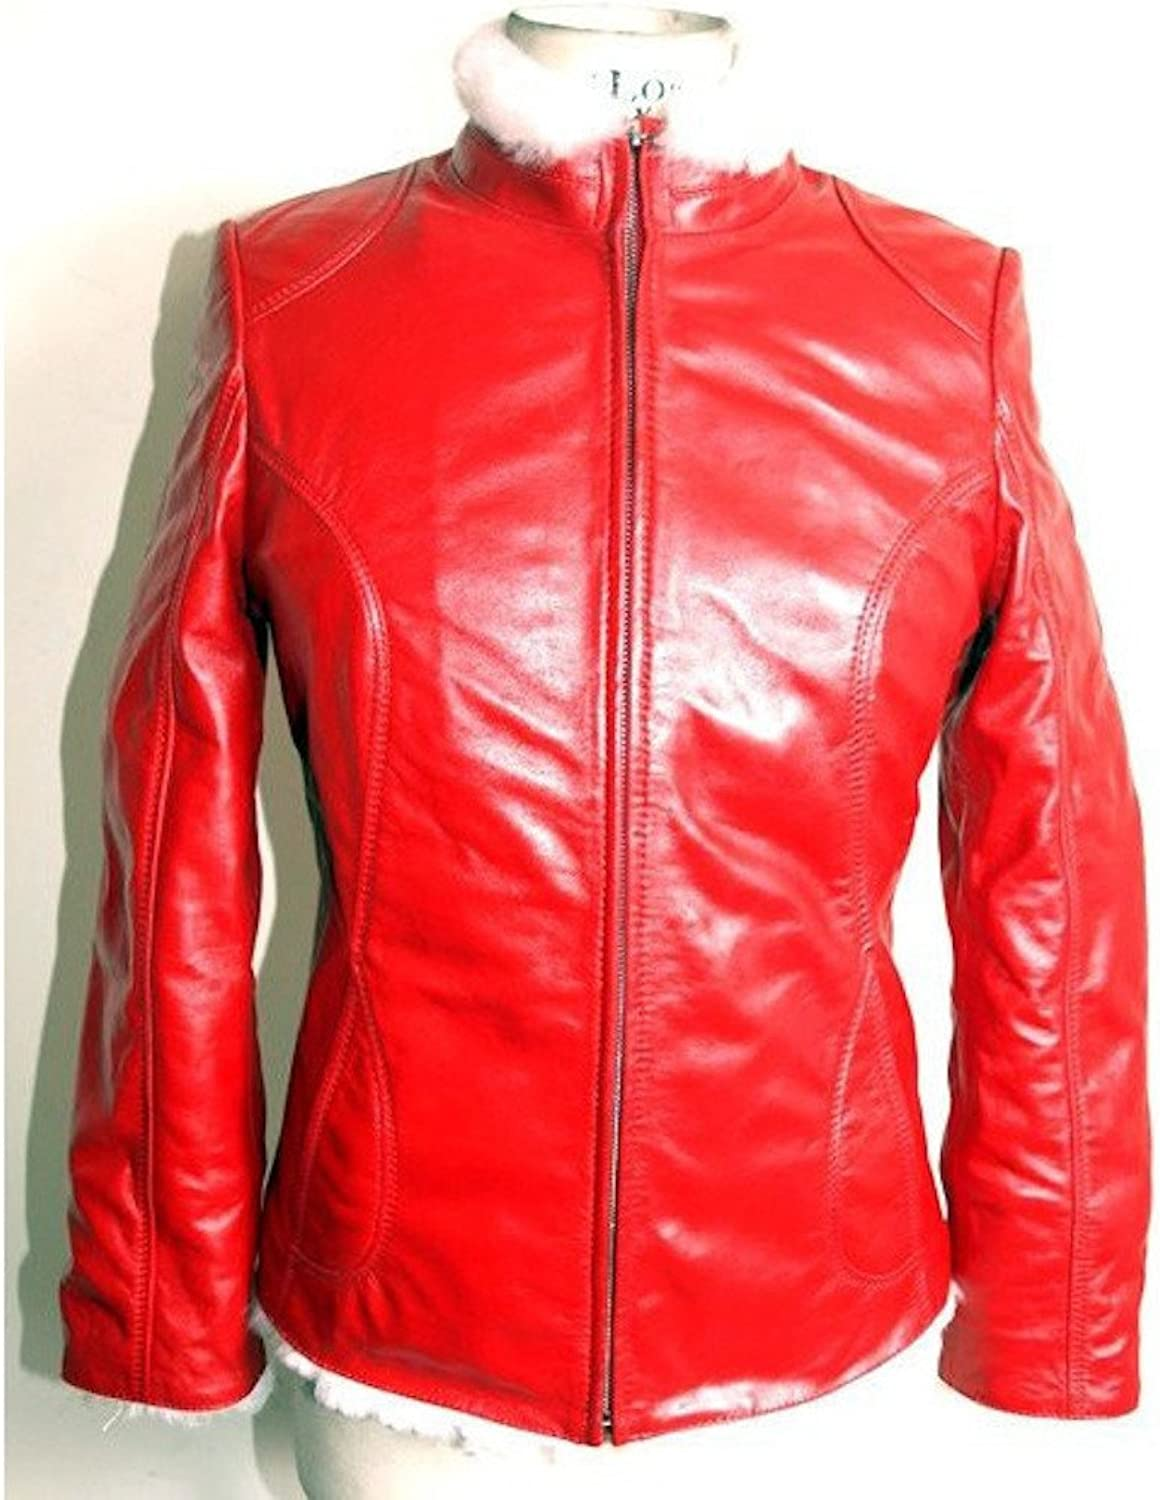 Fadcloset Ladies Carmen Fur Red Leather Jacket